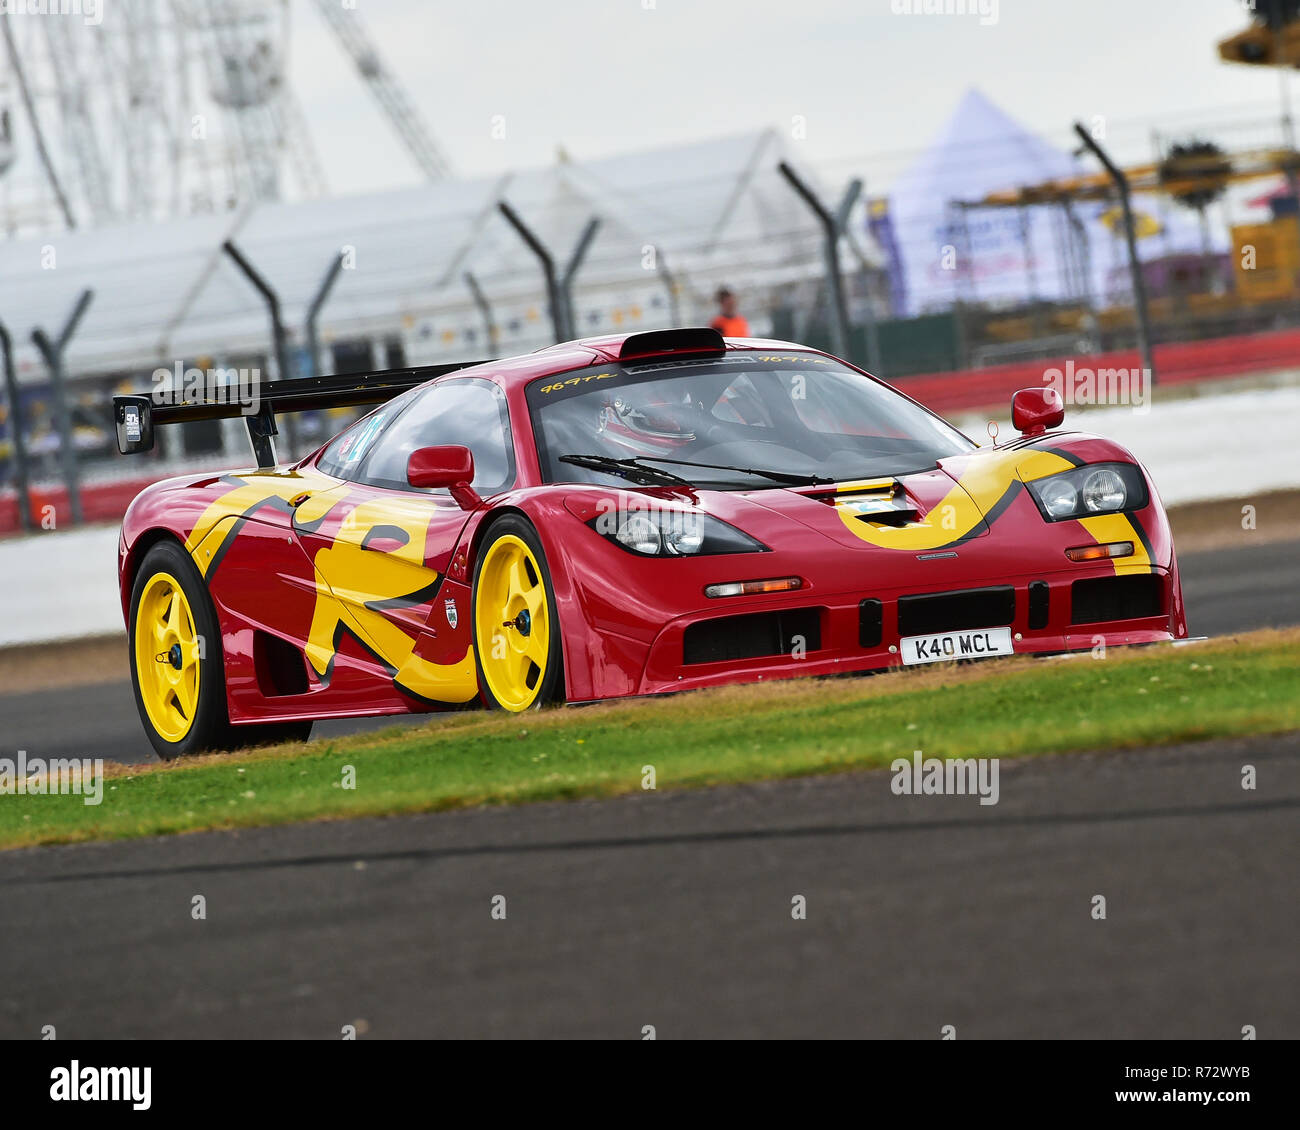 Charles Knill Jones, McLaren F1 GTR, 90's Endurance Legends, Silverstone Classic 2016, 60's cars, Chris McEvoy, cjm-photography, Classic Racing Cars,  - Stock Image